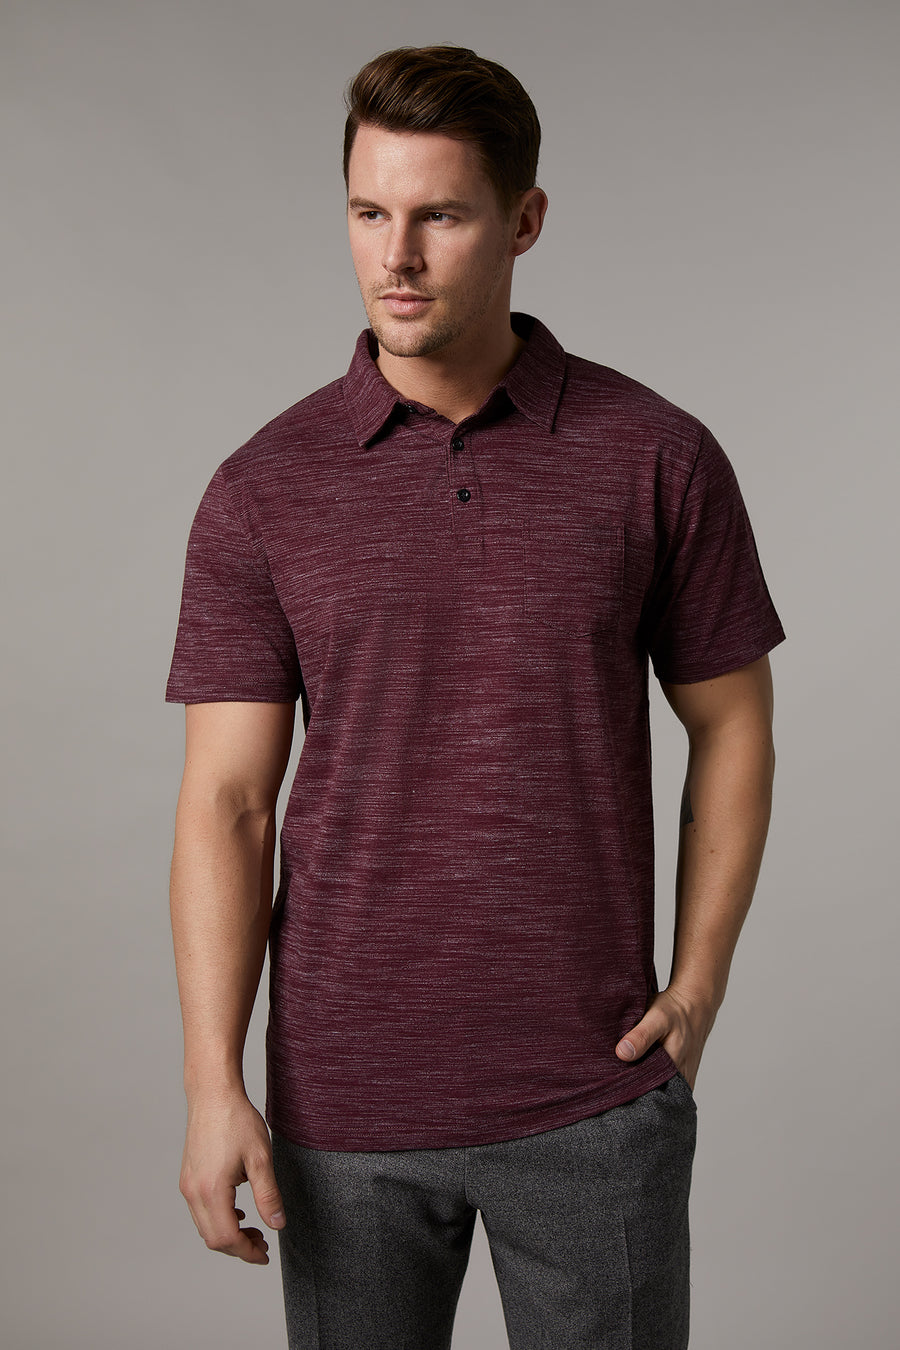 Johnny Cotton Melange Wine Polo